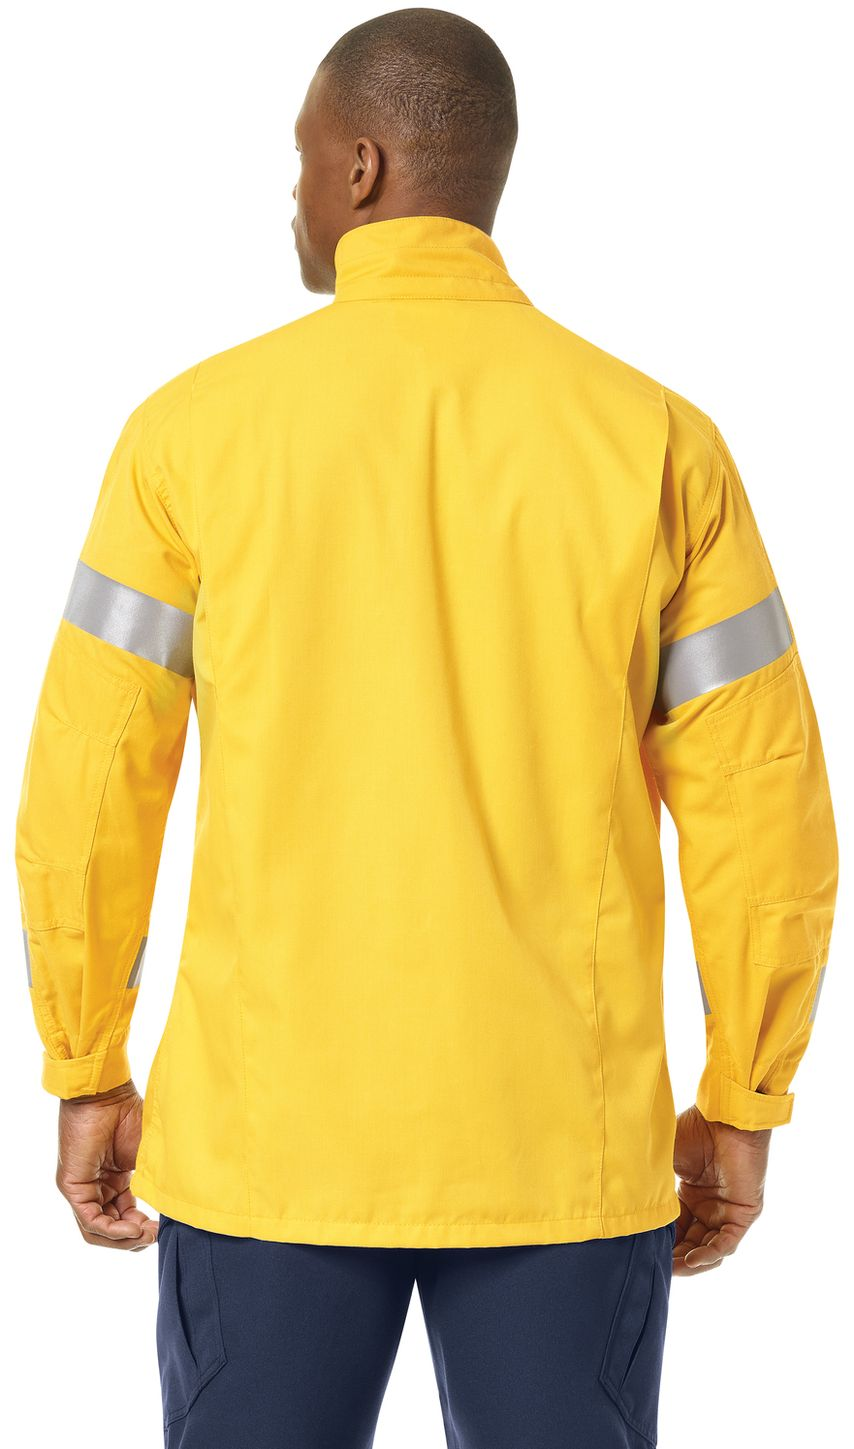 Workrite FR Jacket FW81, Relaxed Fit Wildland Yellow Example Back